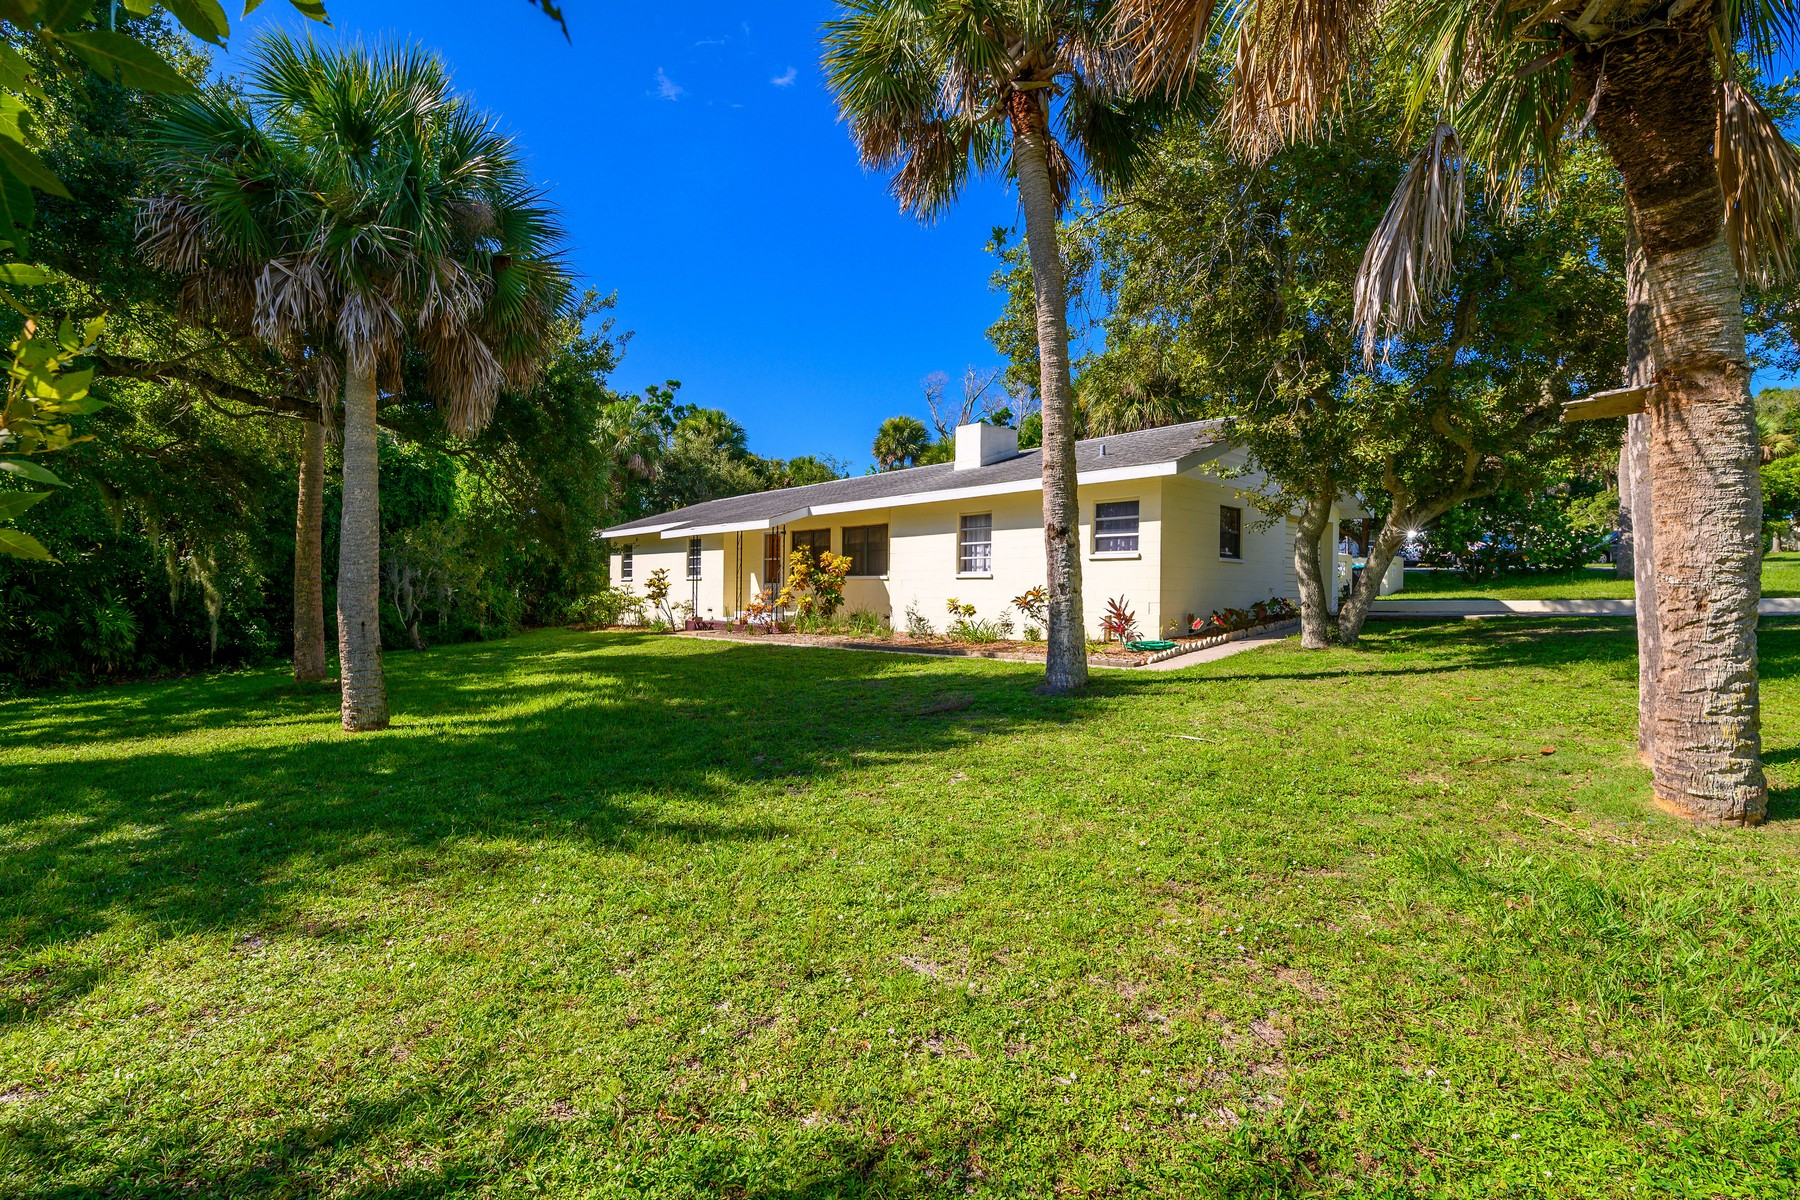 Property for Sale at Charming Home Nestled in Unique Riverfront Community 1419 Anglers Drive NE Palm Bay, Florida 32905 United States